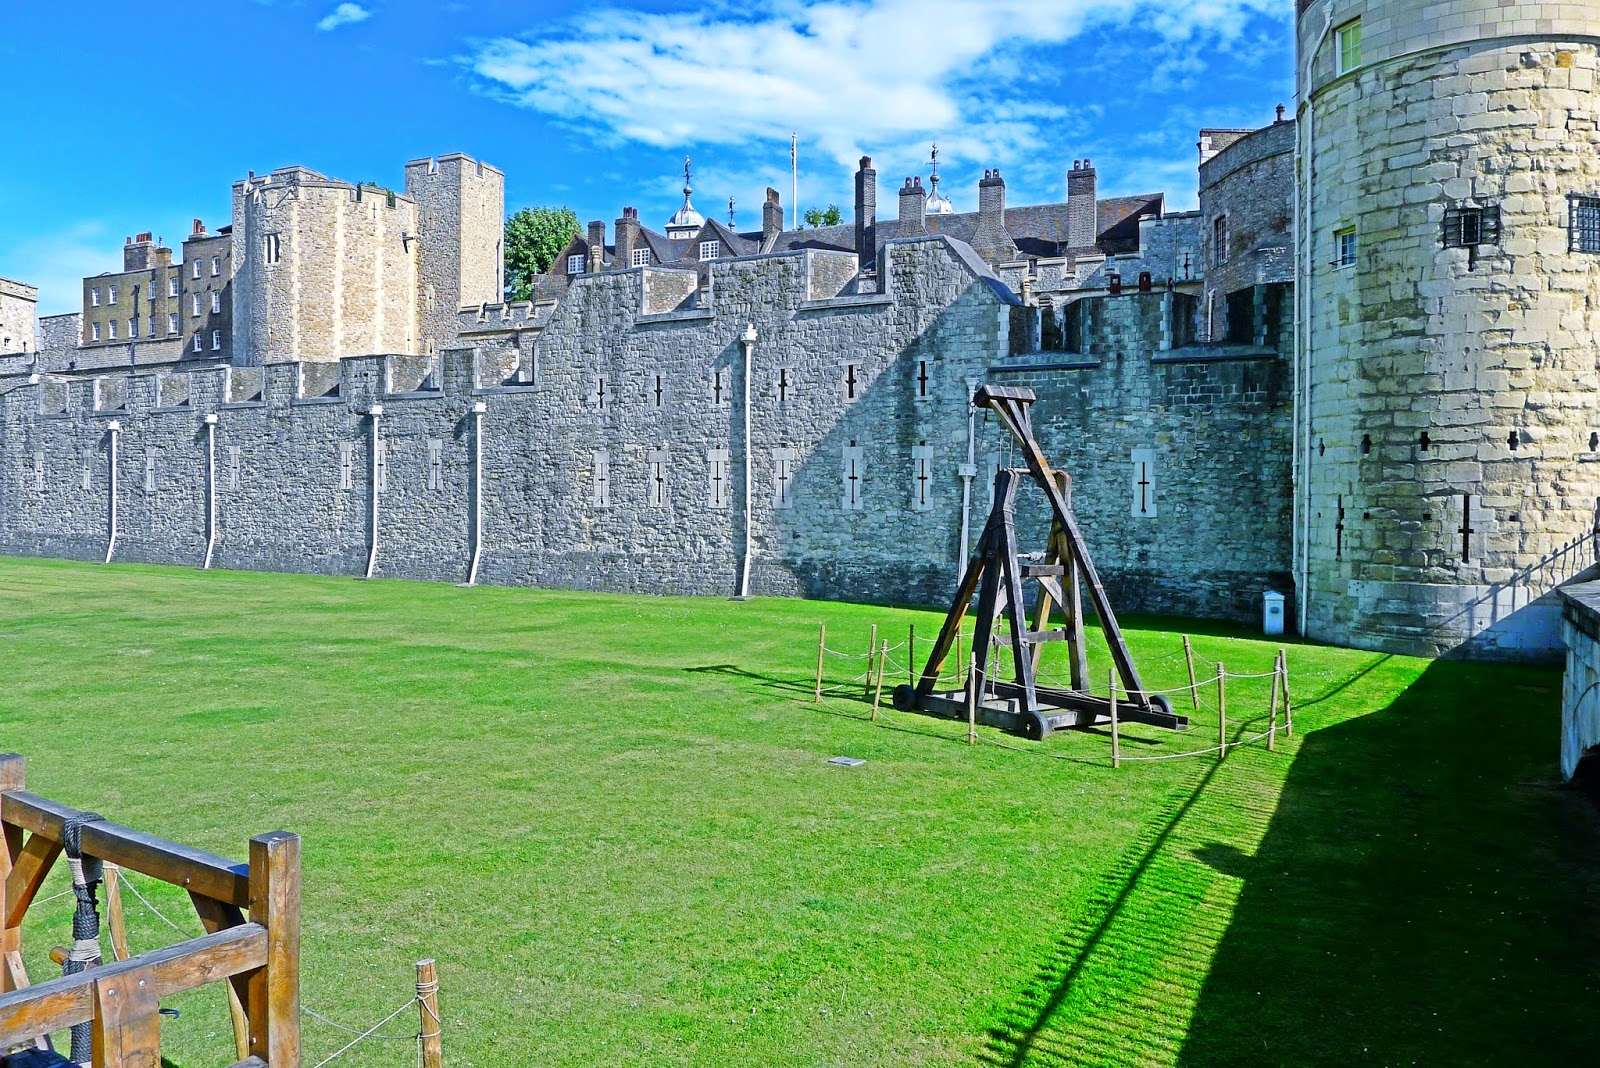 Tower of London Trebuchet